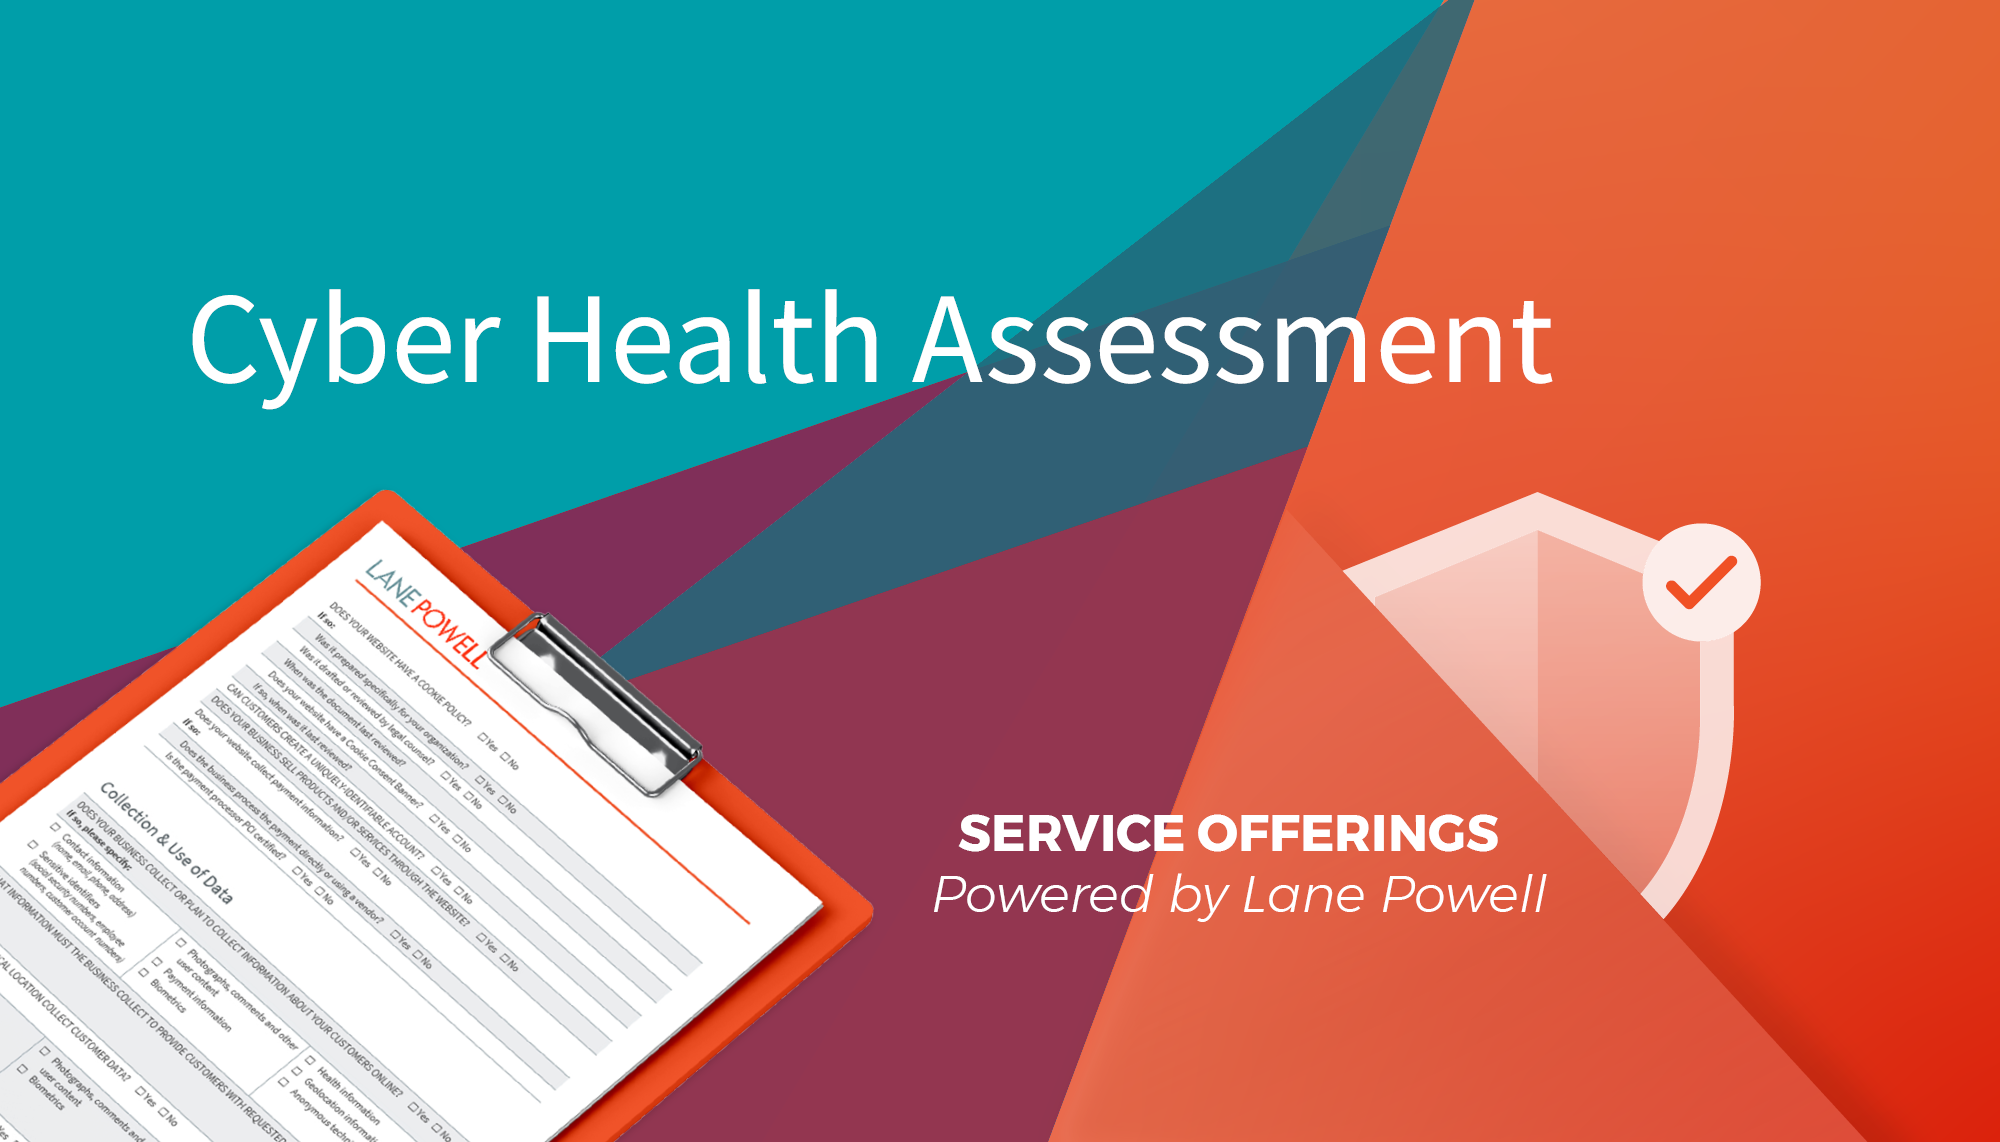 Cyber Health Assessment Service Offering